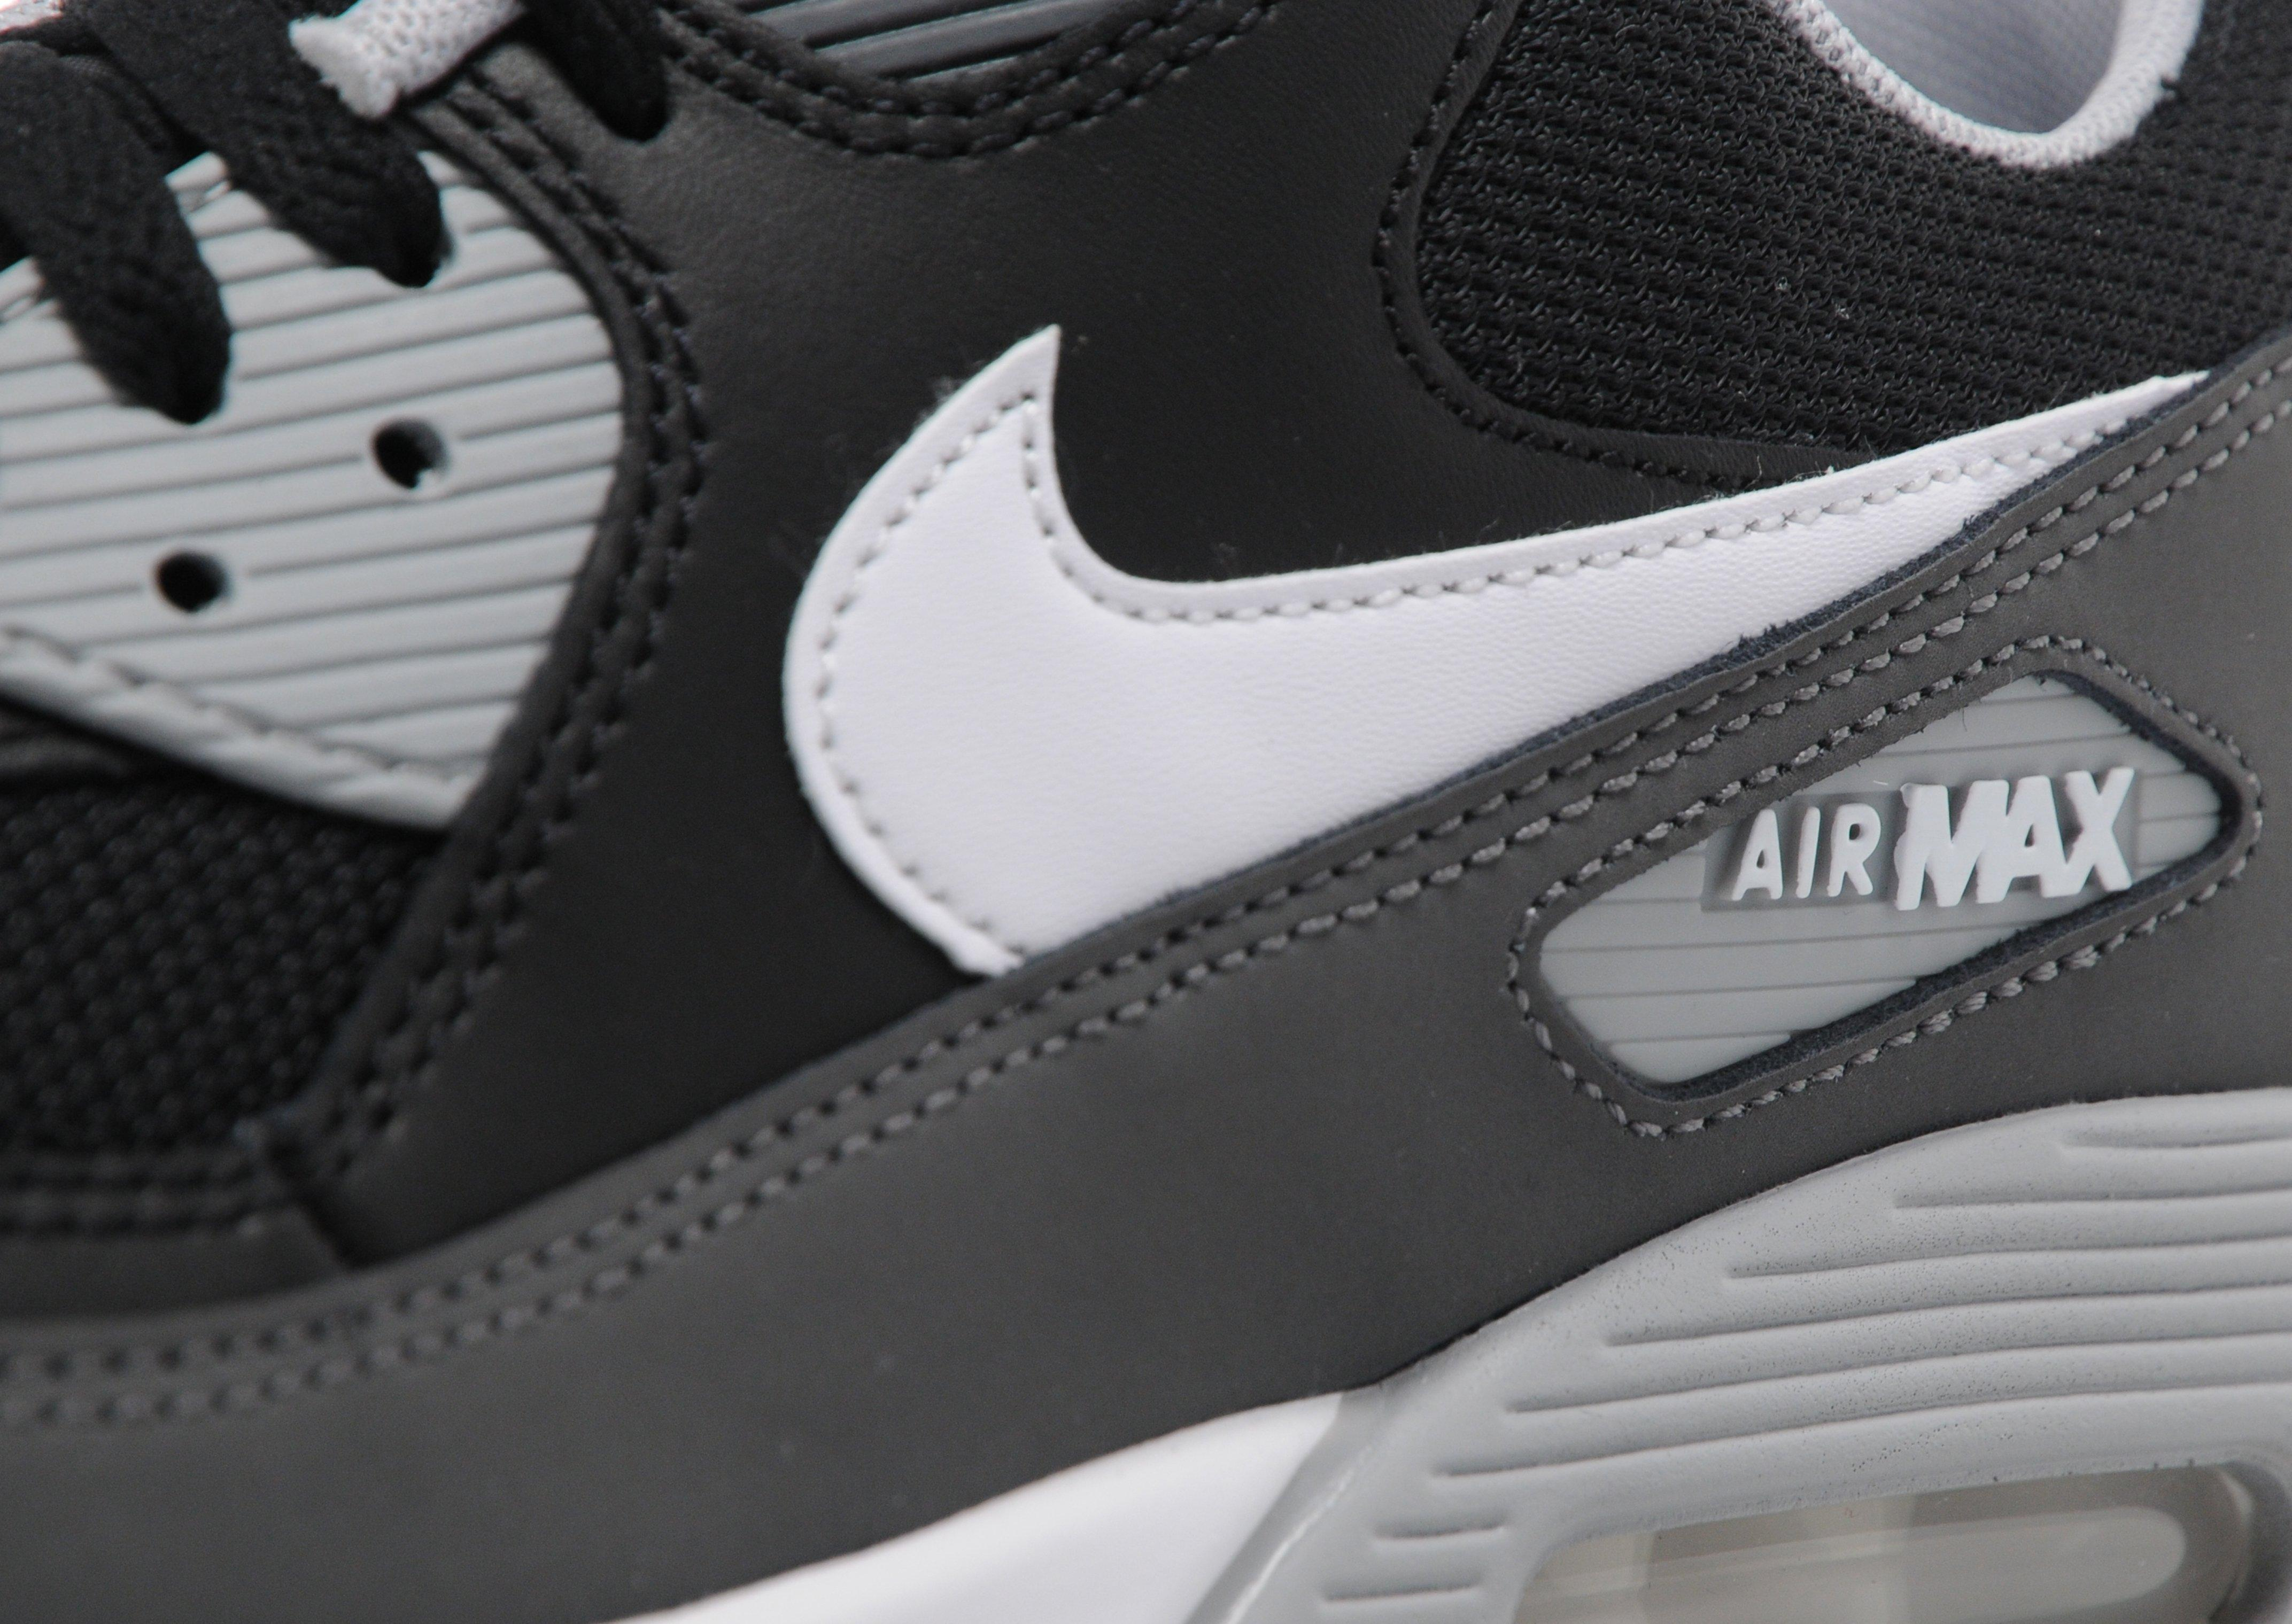 separation shoes 90884 28475 denmark nike lunar solo run in white lyst cf4c0 09aa4  inexpensive jd sport  air max 90 81679 44a78